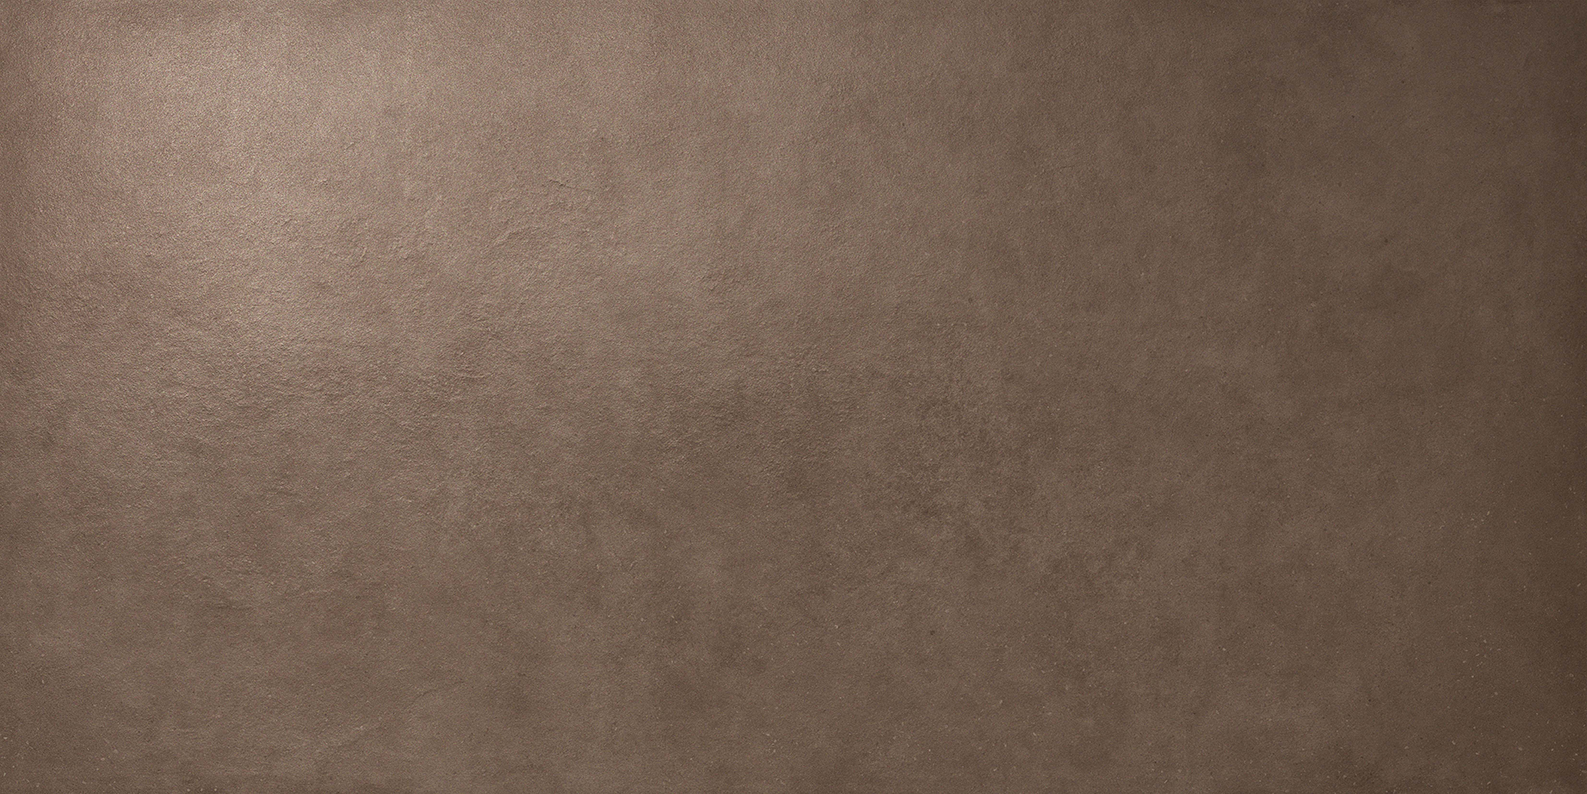 Dwell Brown Leather 750x1500mm Polished Finish Floor Tile (1.12m2 box)